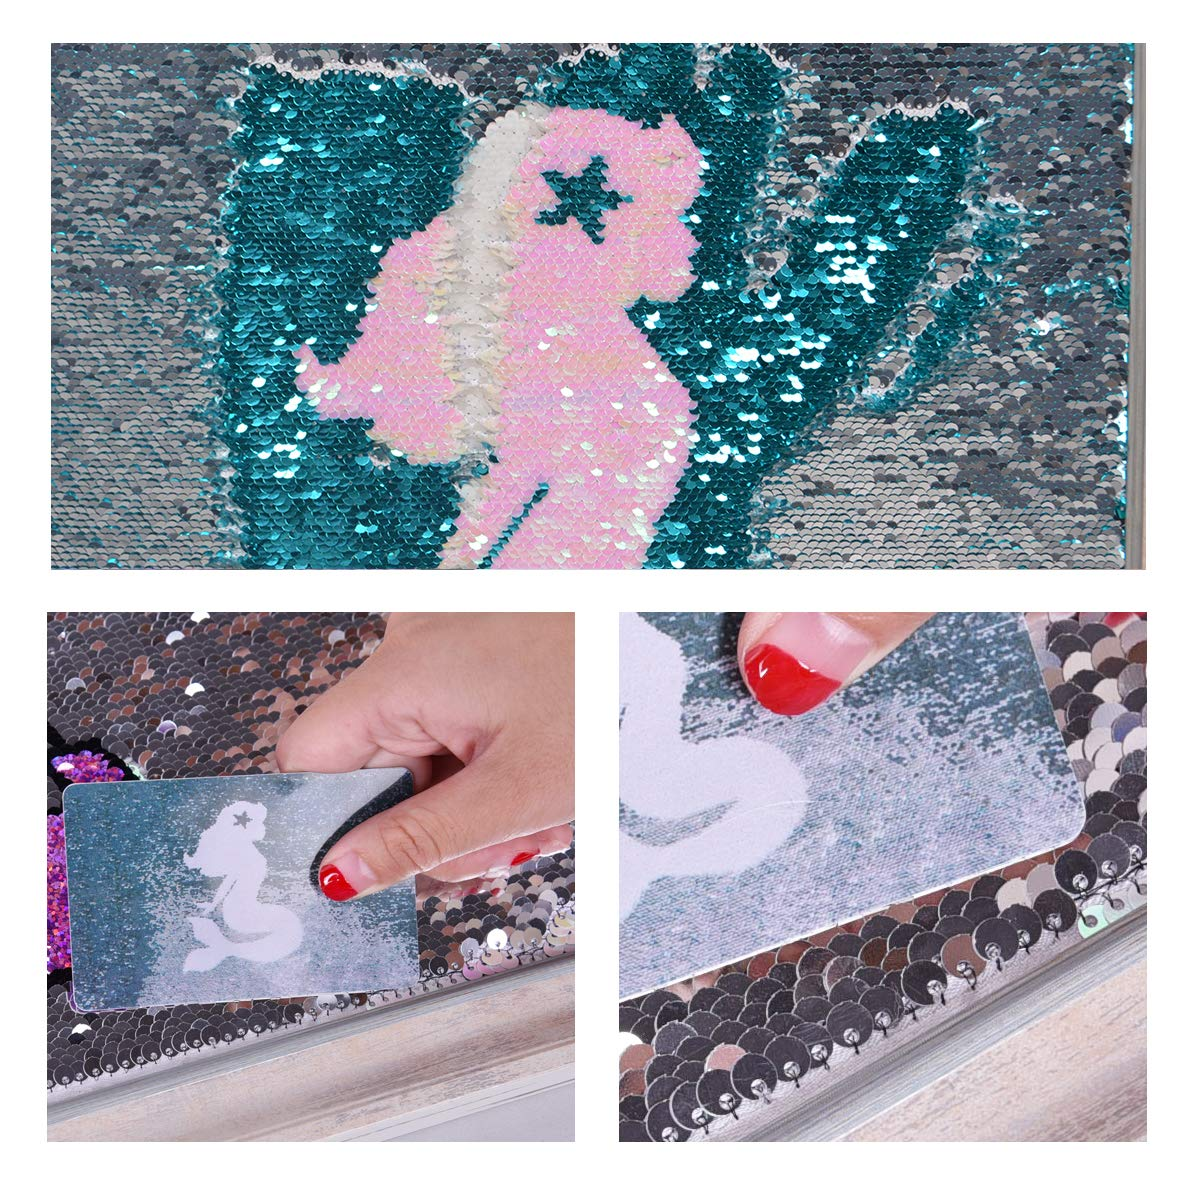 Unicorn Sequin Wall Art Reversible Wall Posters Decoration Unicorn Room Decor Gifts for Kids Nursery Bedroom 17 /× 17